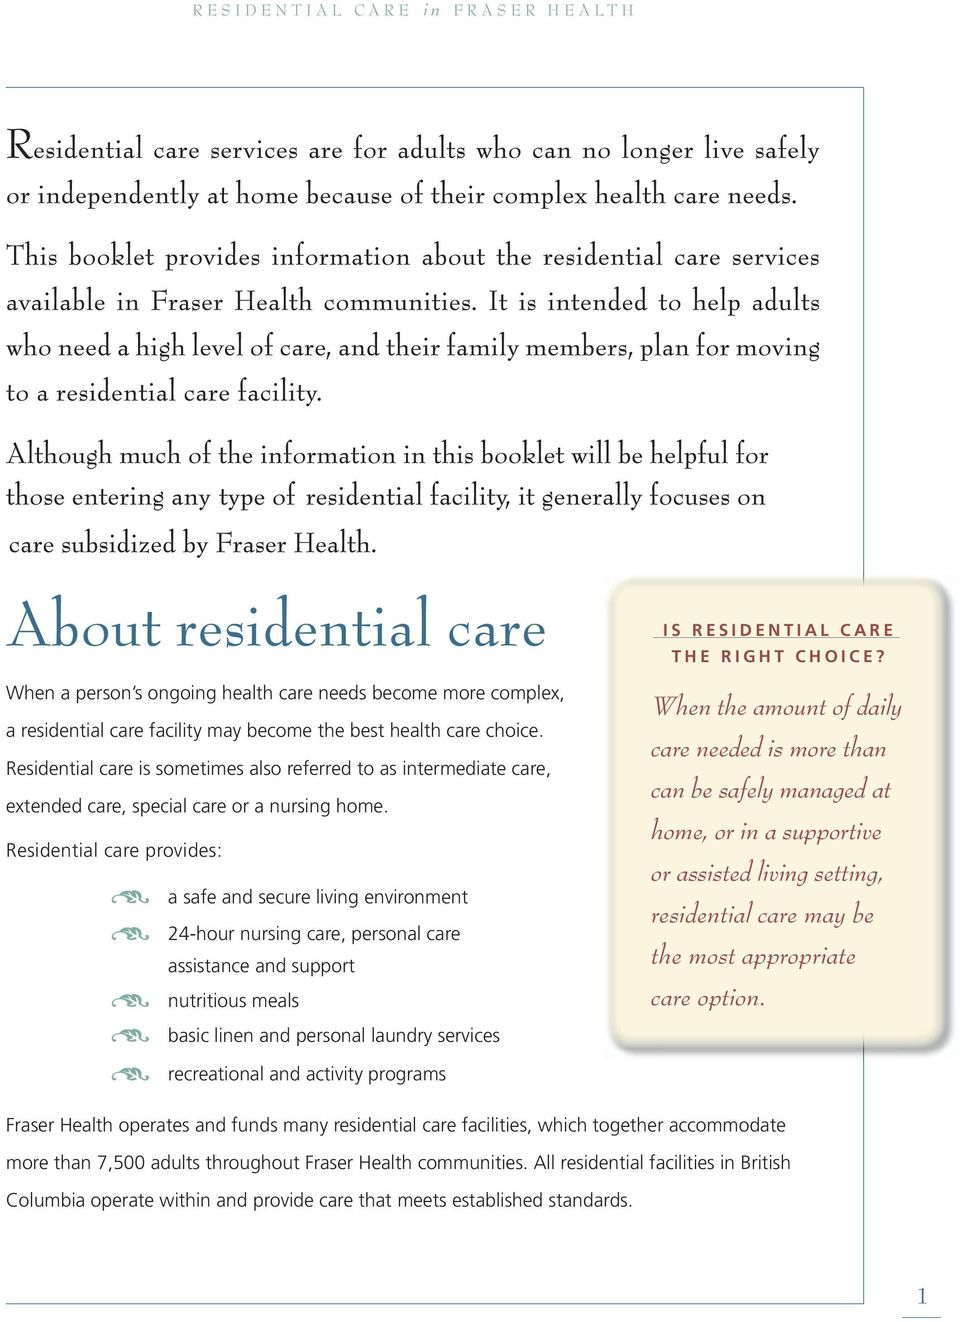 Residential care provides: a safe and secure living environment 24-hour nursing care, personal care assistance and support nutritious meals I S R E S I D E N T I A L C A R E T H E R I G H T C H O I C